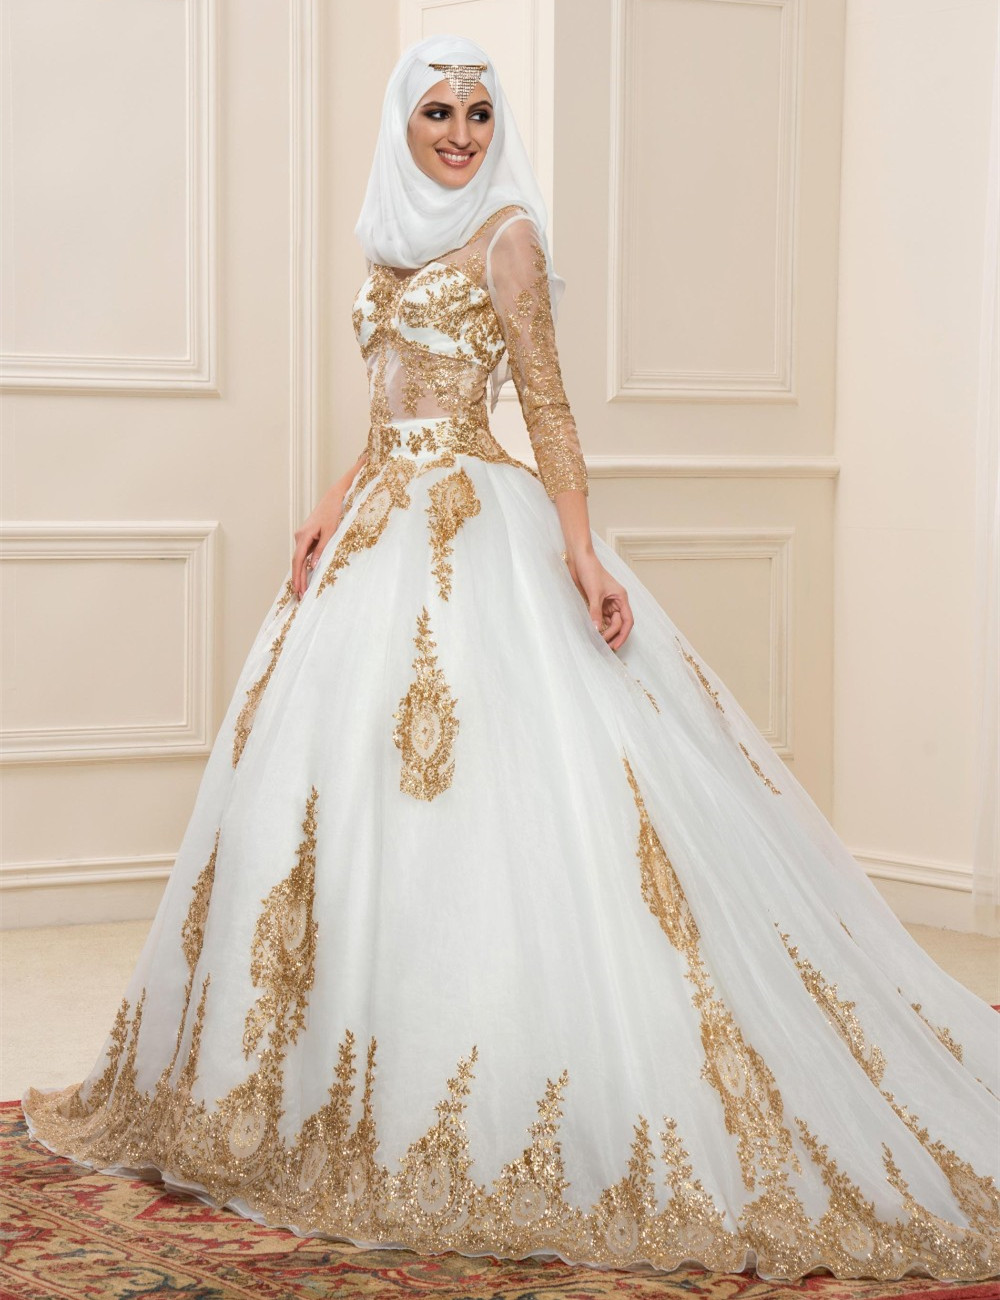 Gold Lace Muslim Wedding Dresses With Sleeves 2016 See Through Ball Gown font b Hijab b